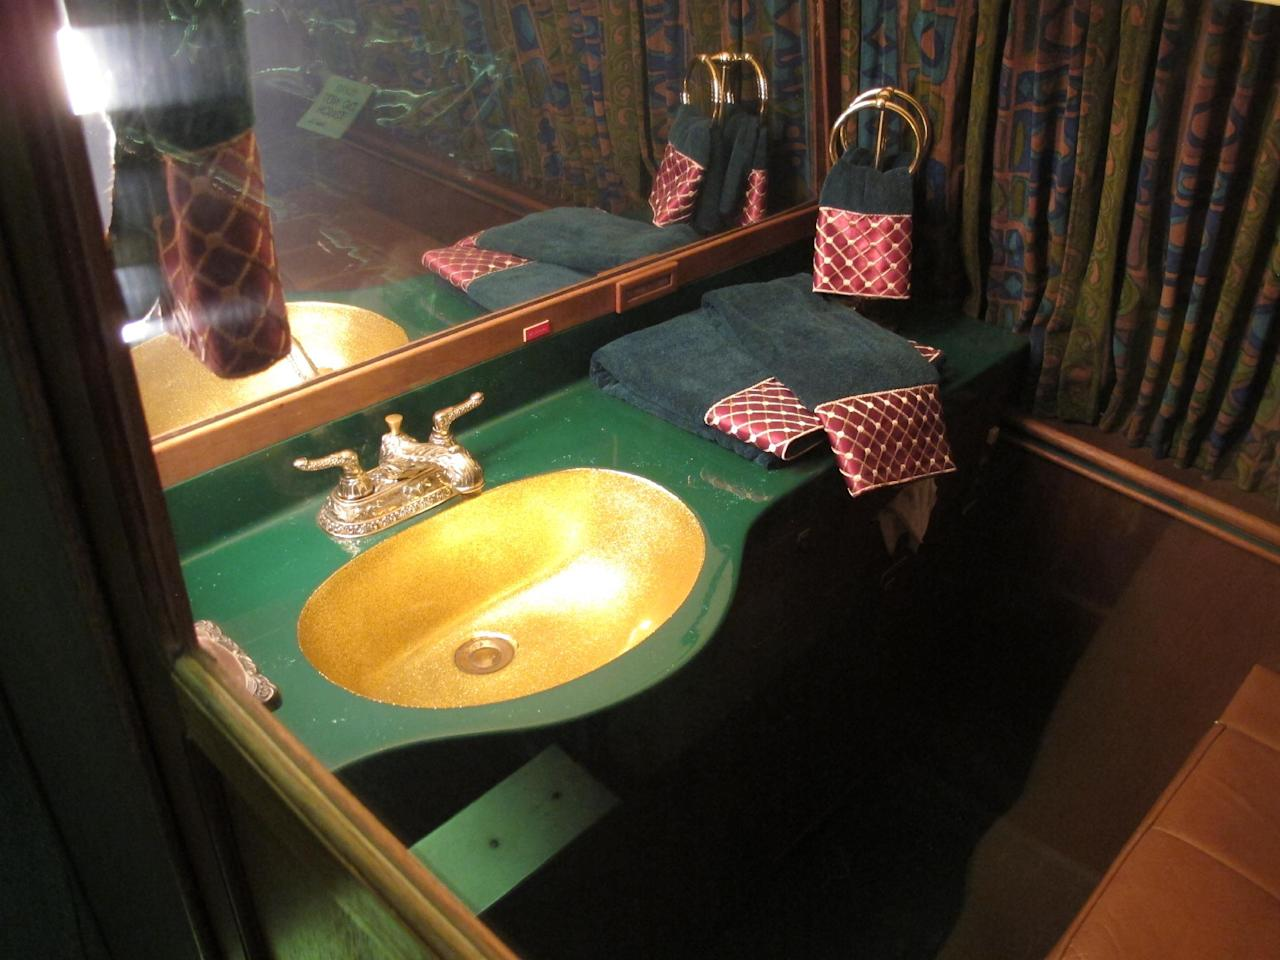 This photo taken on Tuesday, July 1, 2014, shows the bathroom inside the Lisa Marie, one of two jets once owned by late singer Elvis Presley, that are used as tourist exhibits at the Graceland attraction in Memphis, Tenn. The company that operates the Graceland tourist attraction has told the current owners of the Lisa Marie, and another plane called the Hound Dog II, that it wants the planes removed from Graceland by late April 2015, or shortly afterward. (AP Photo/Adrian Sainz)